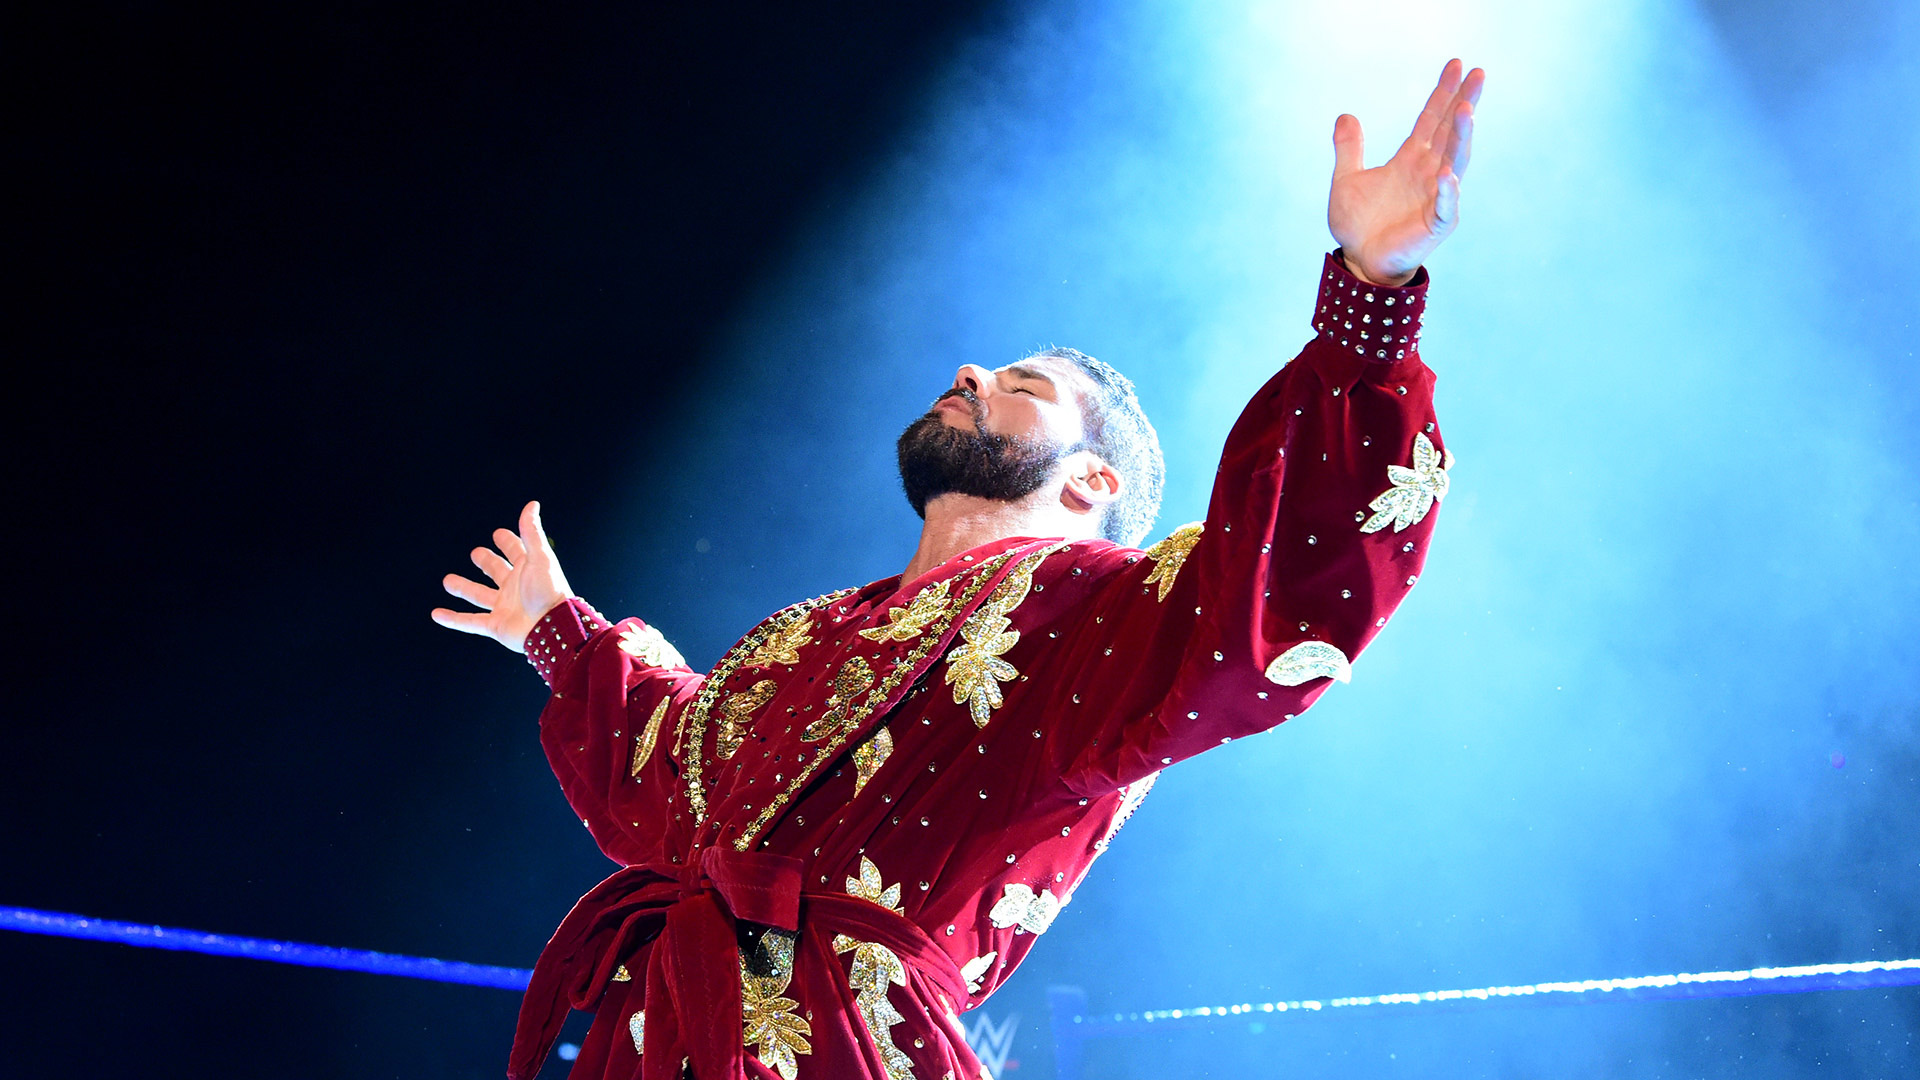 Bobby Roode Talks About Joining The Main Roster, Wanting To Wrestle John Cena - ProWrestling.com